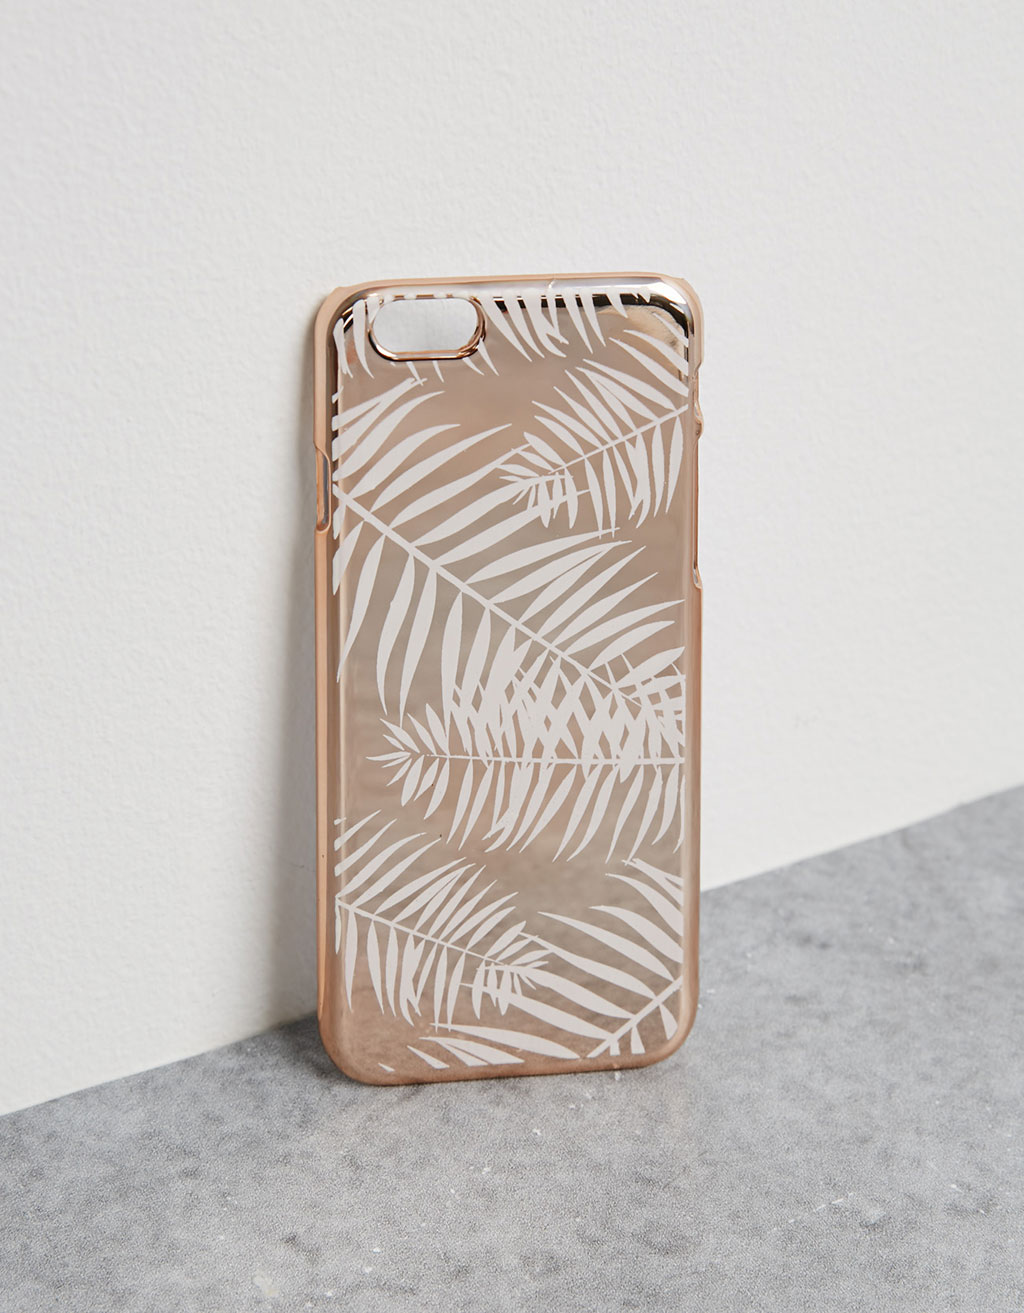 Palm tree iPhone 6/6s case